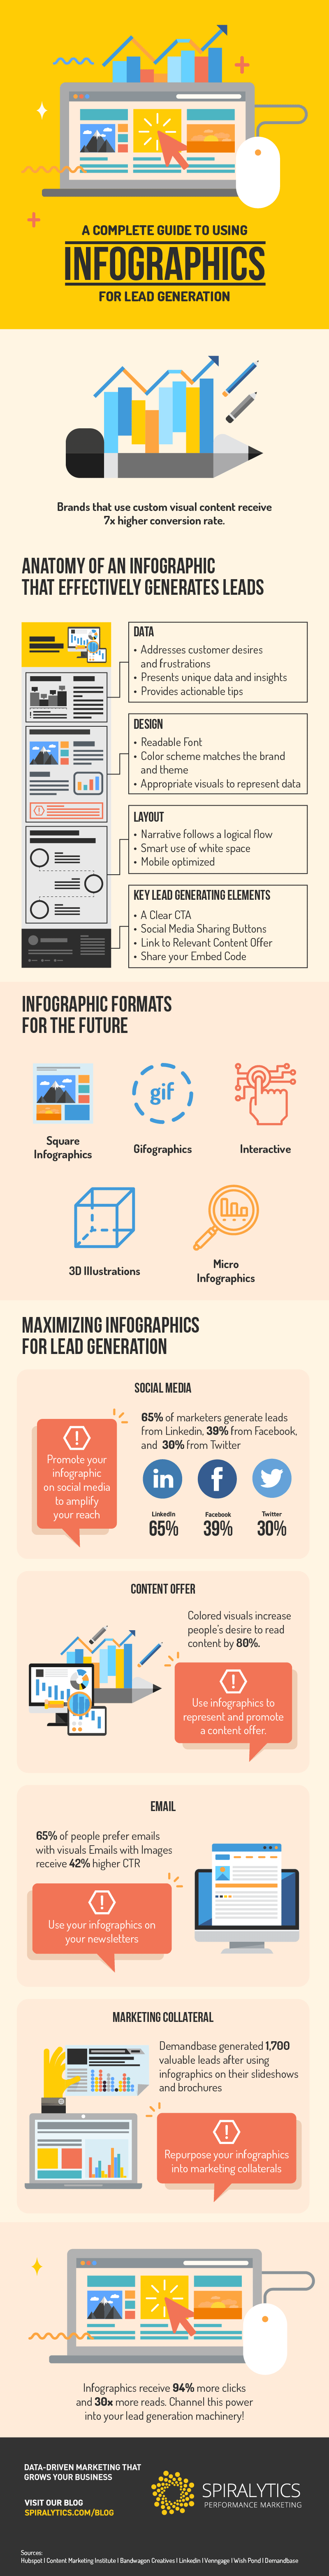 Generating Leads with Infographics